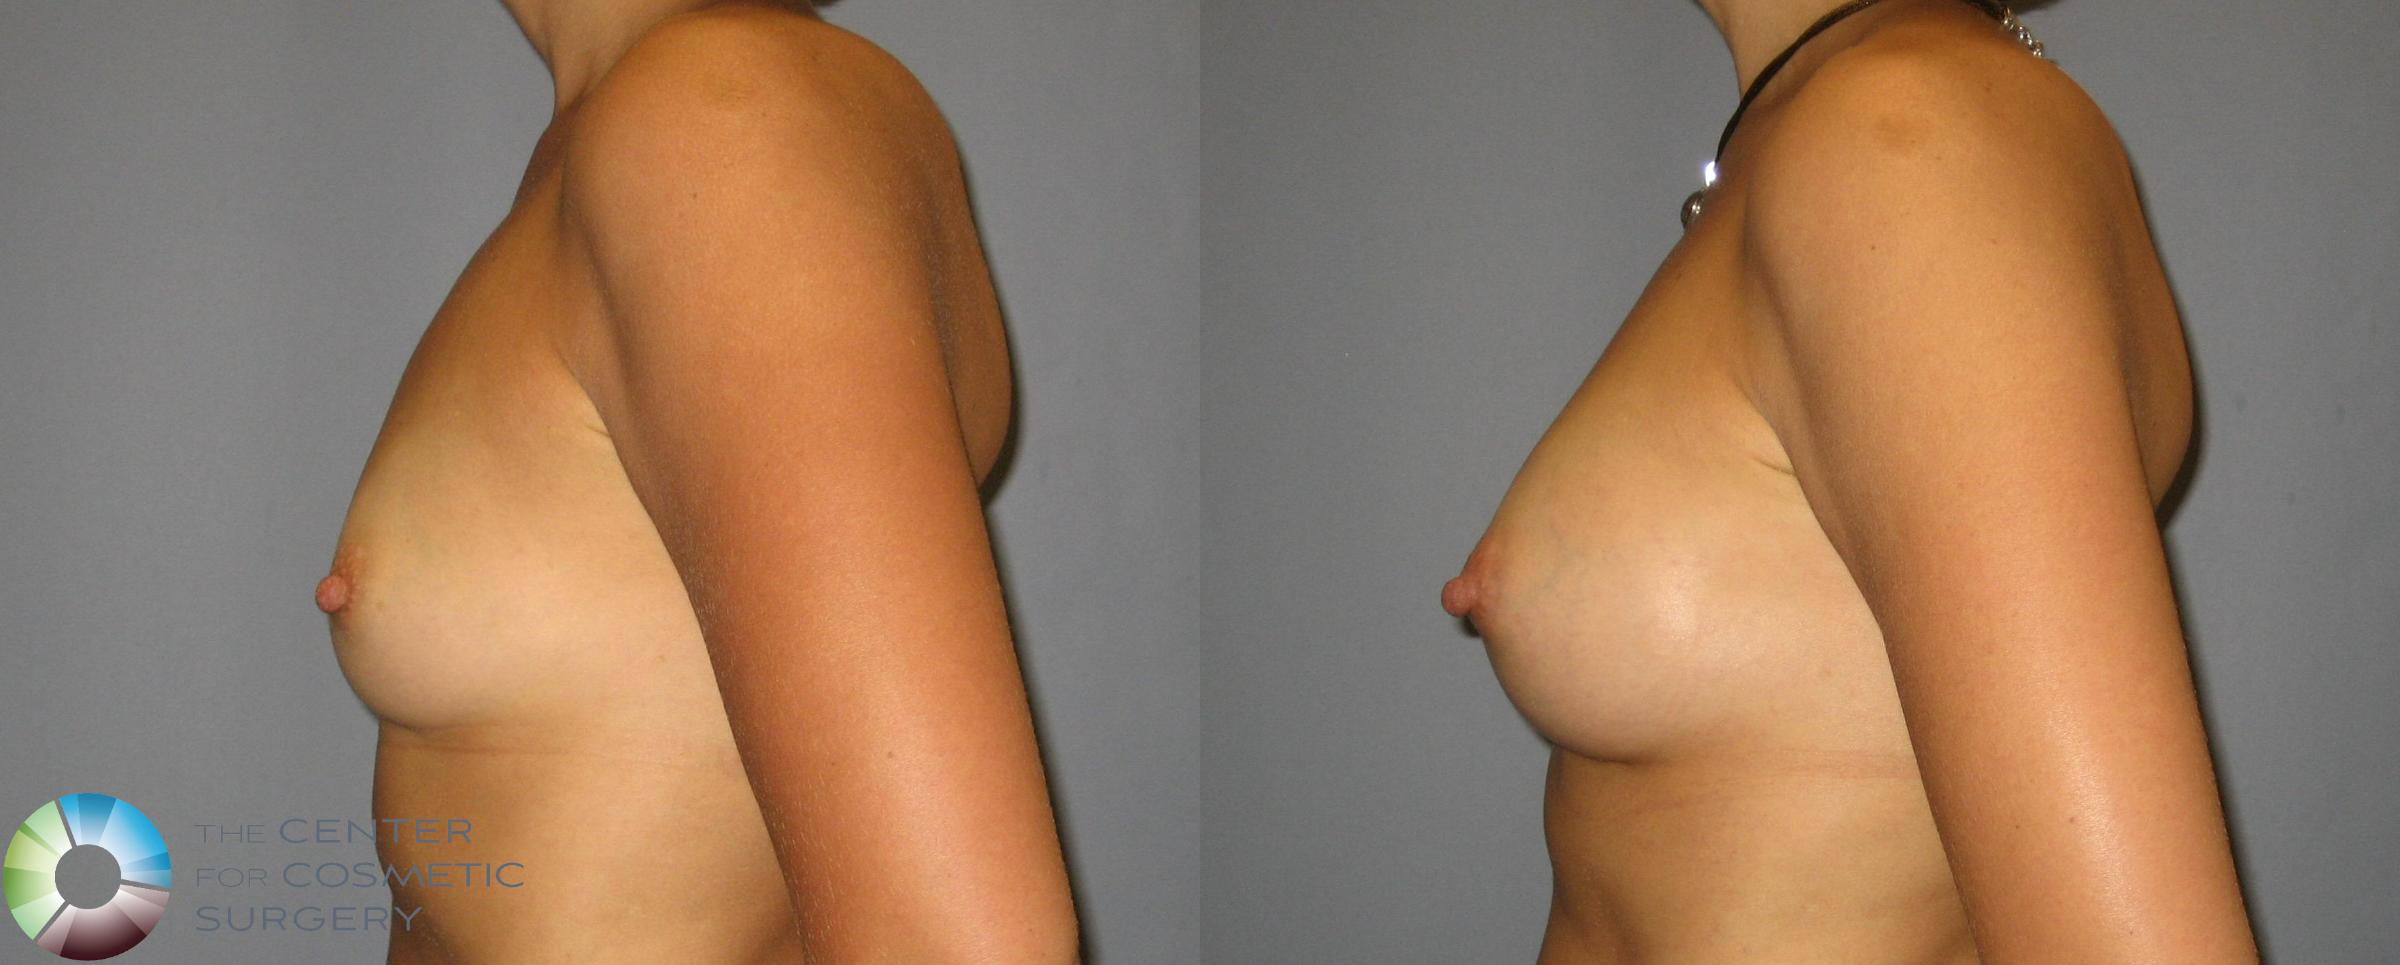 Breast Augmentation Case 351 Before & After View #3 | Golden, CO | The Center for Cosmetic Surgery